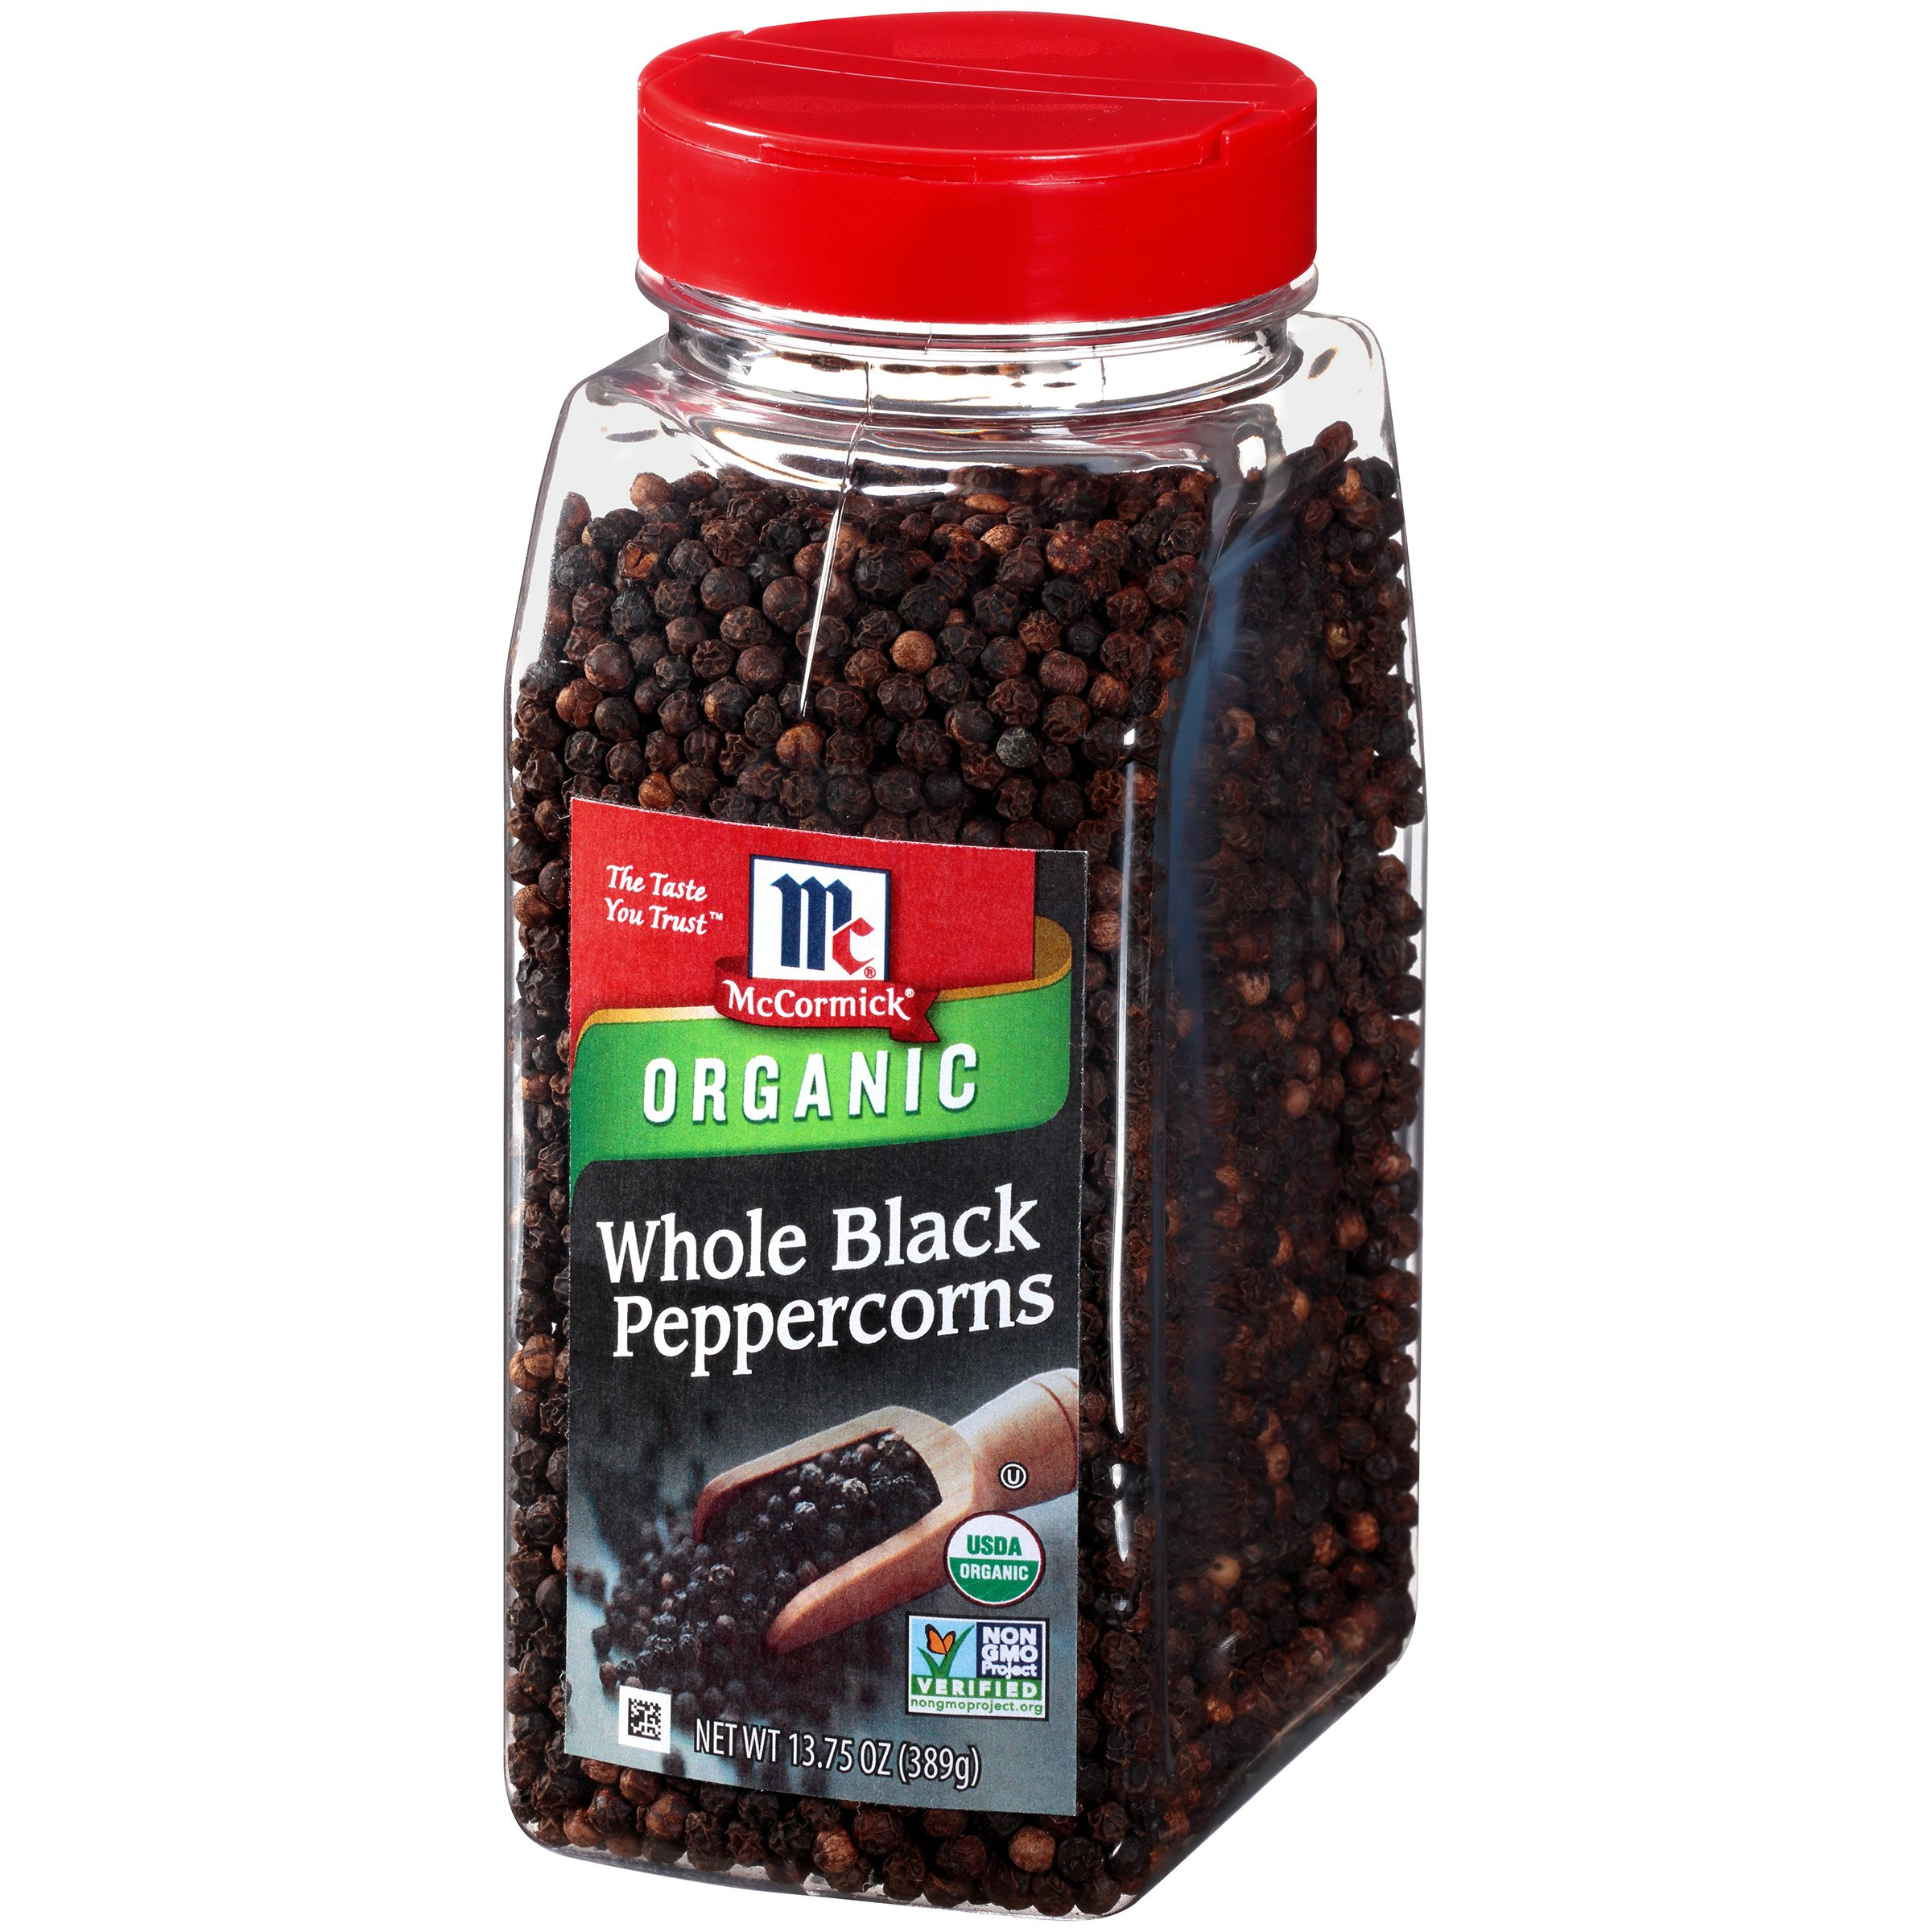 McCormick Organic Whole Black Peppercorns, 13.75 oz by McCormick